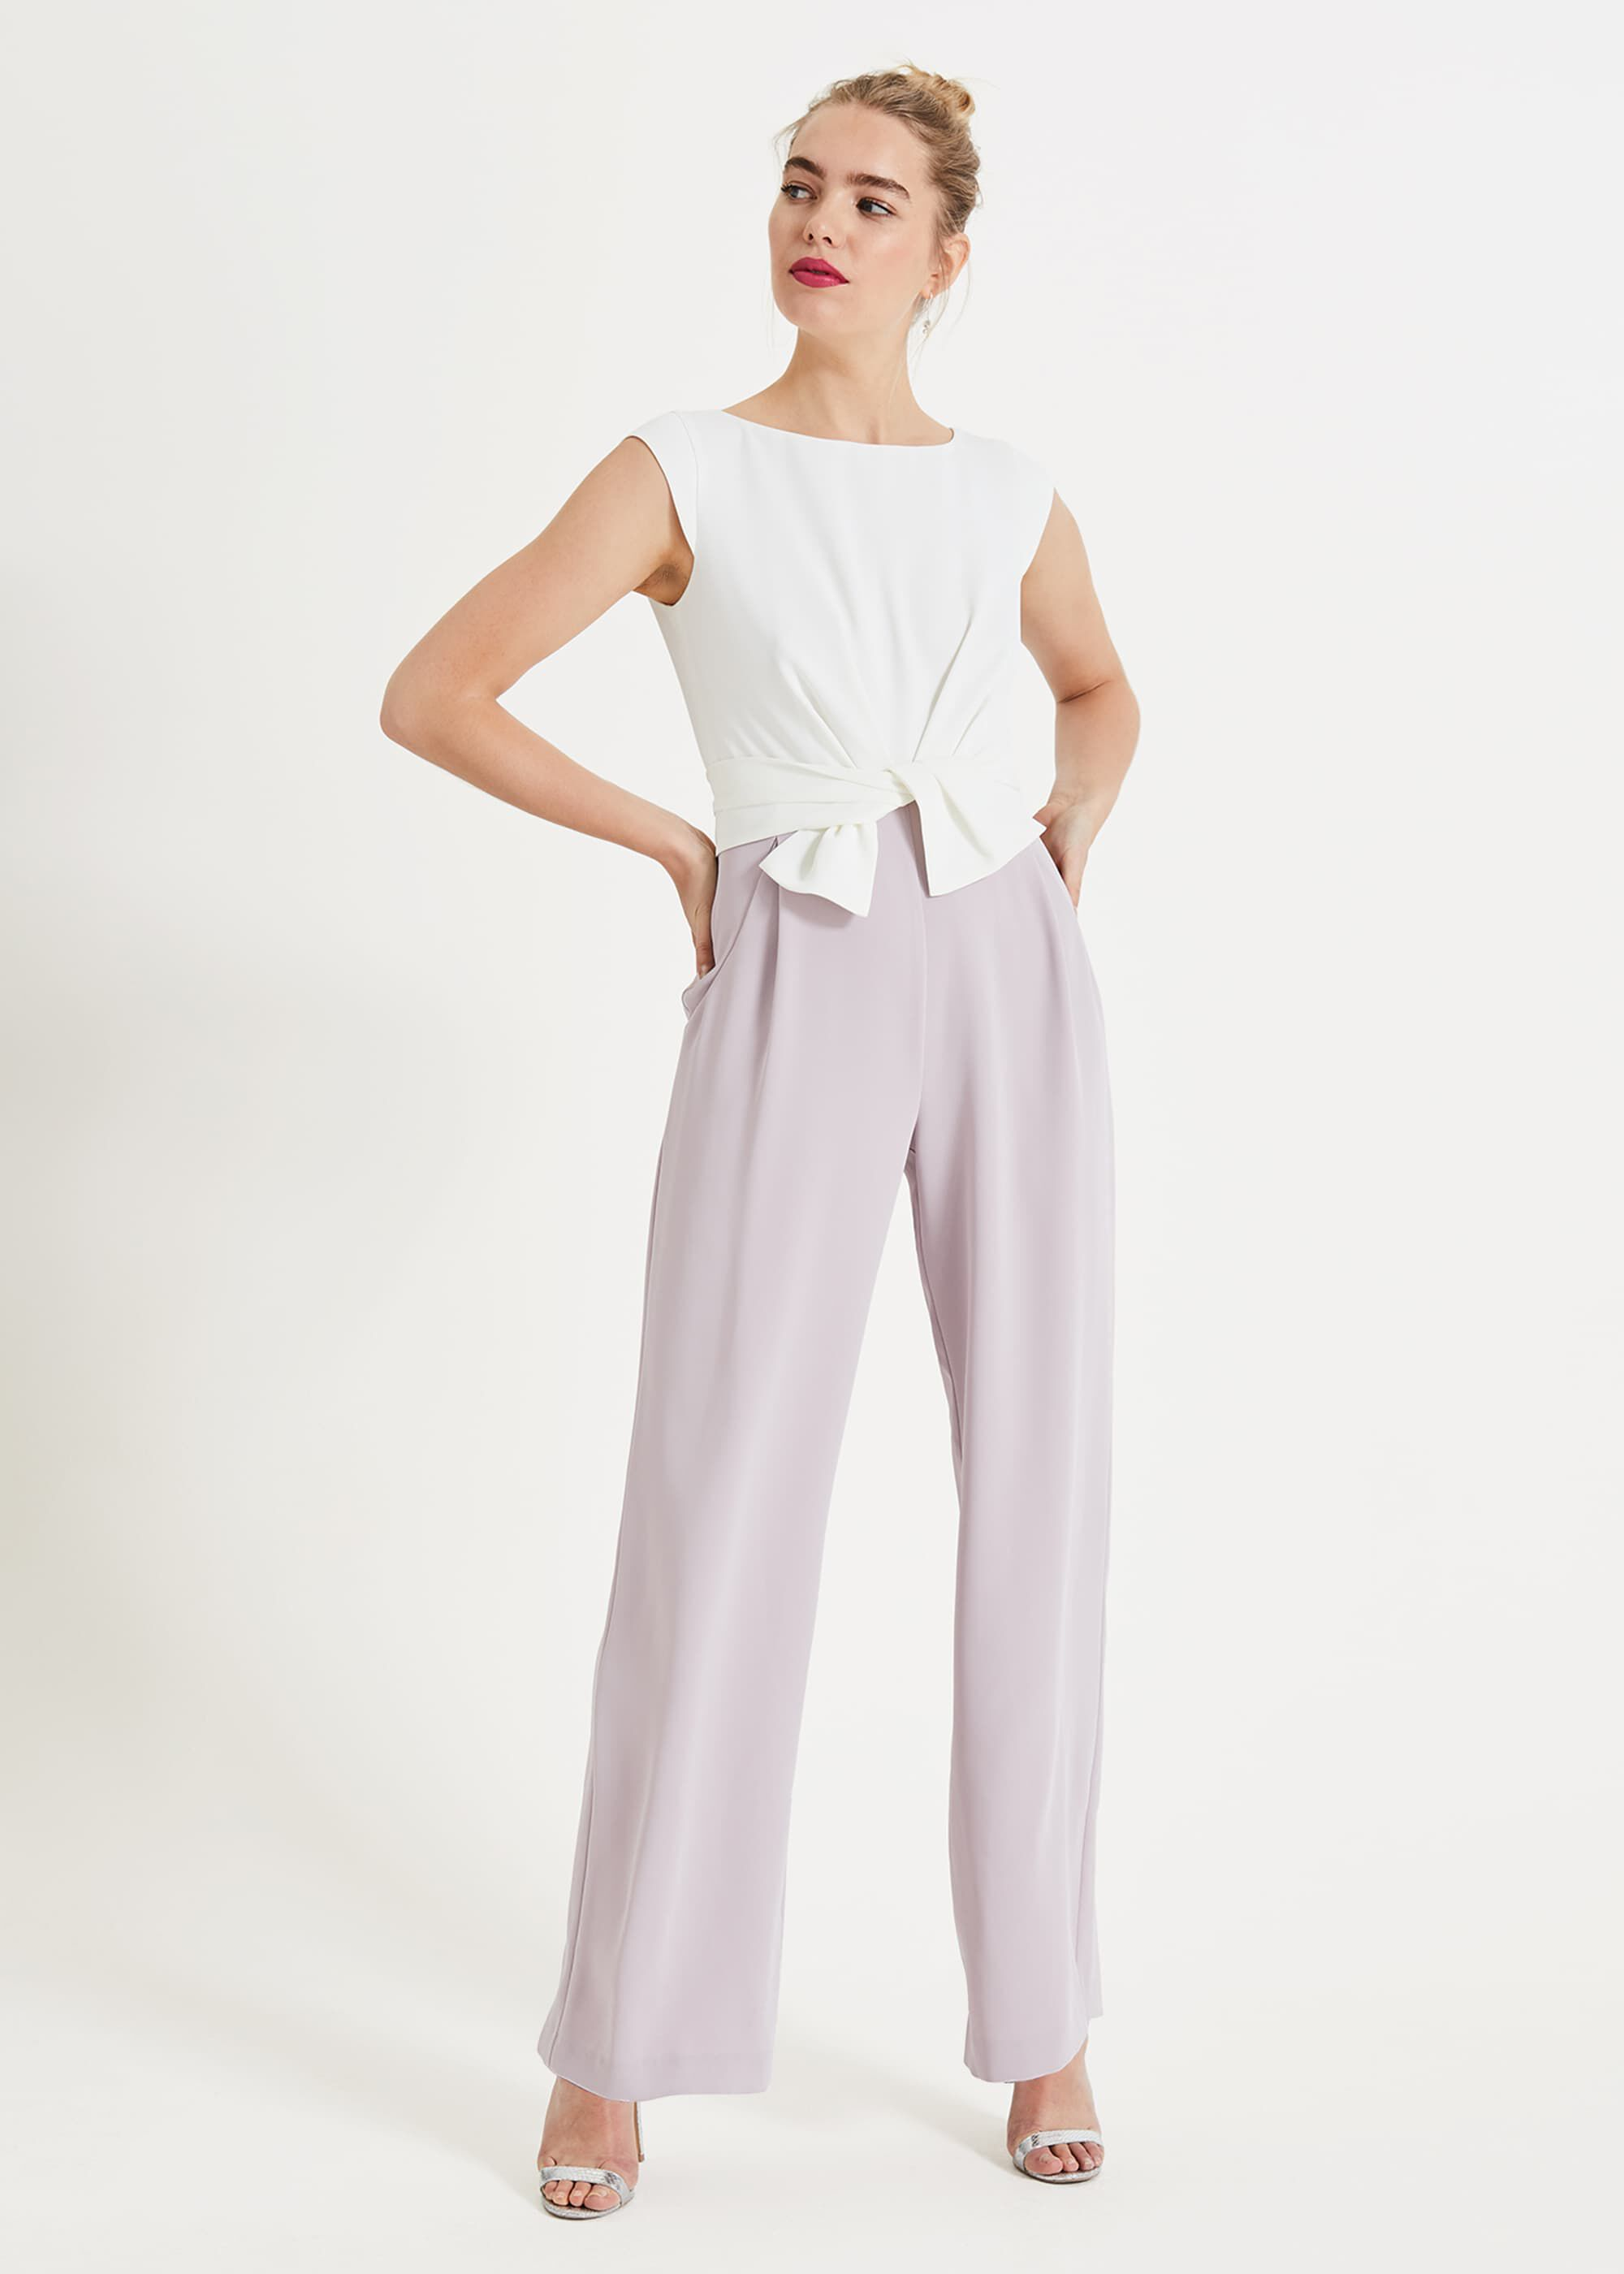 Phase Eight Janey Knot Jumpsuit, Cream, Jumpsuit